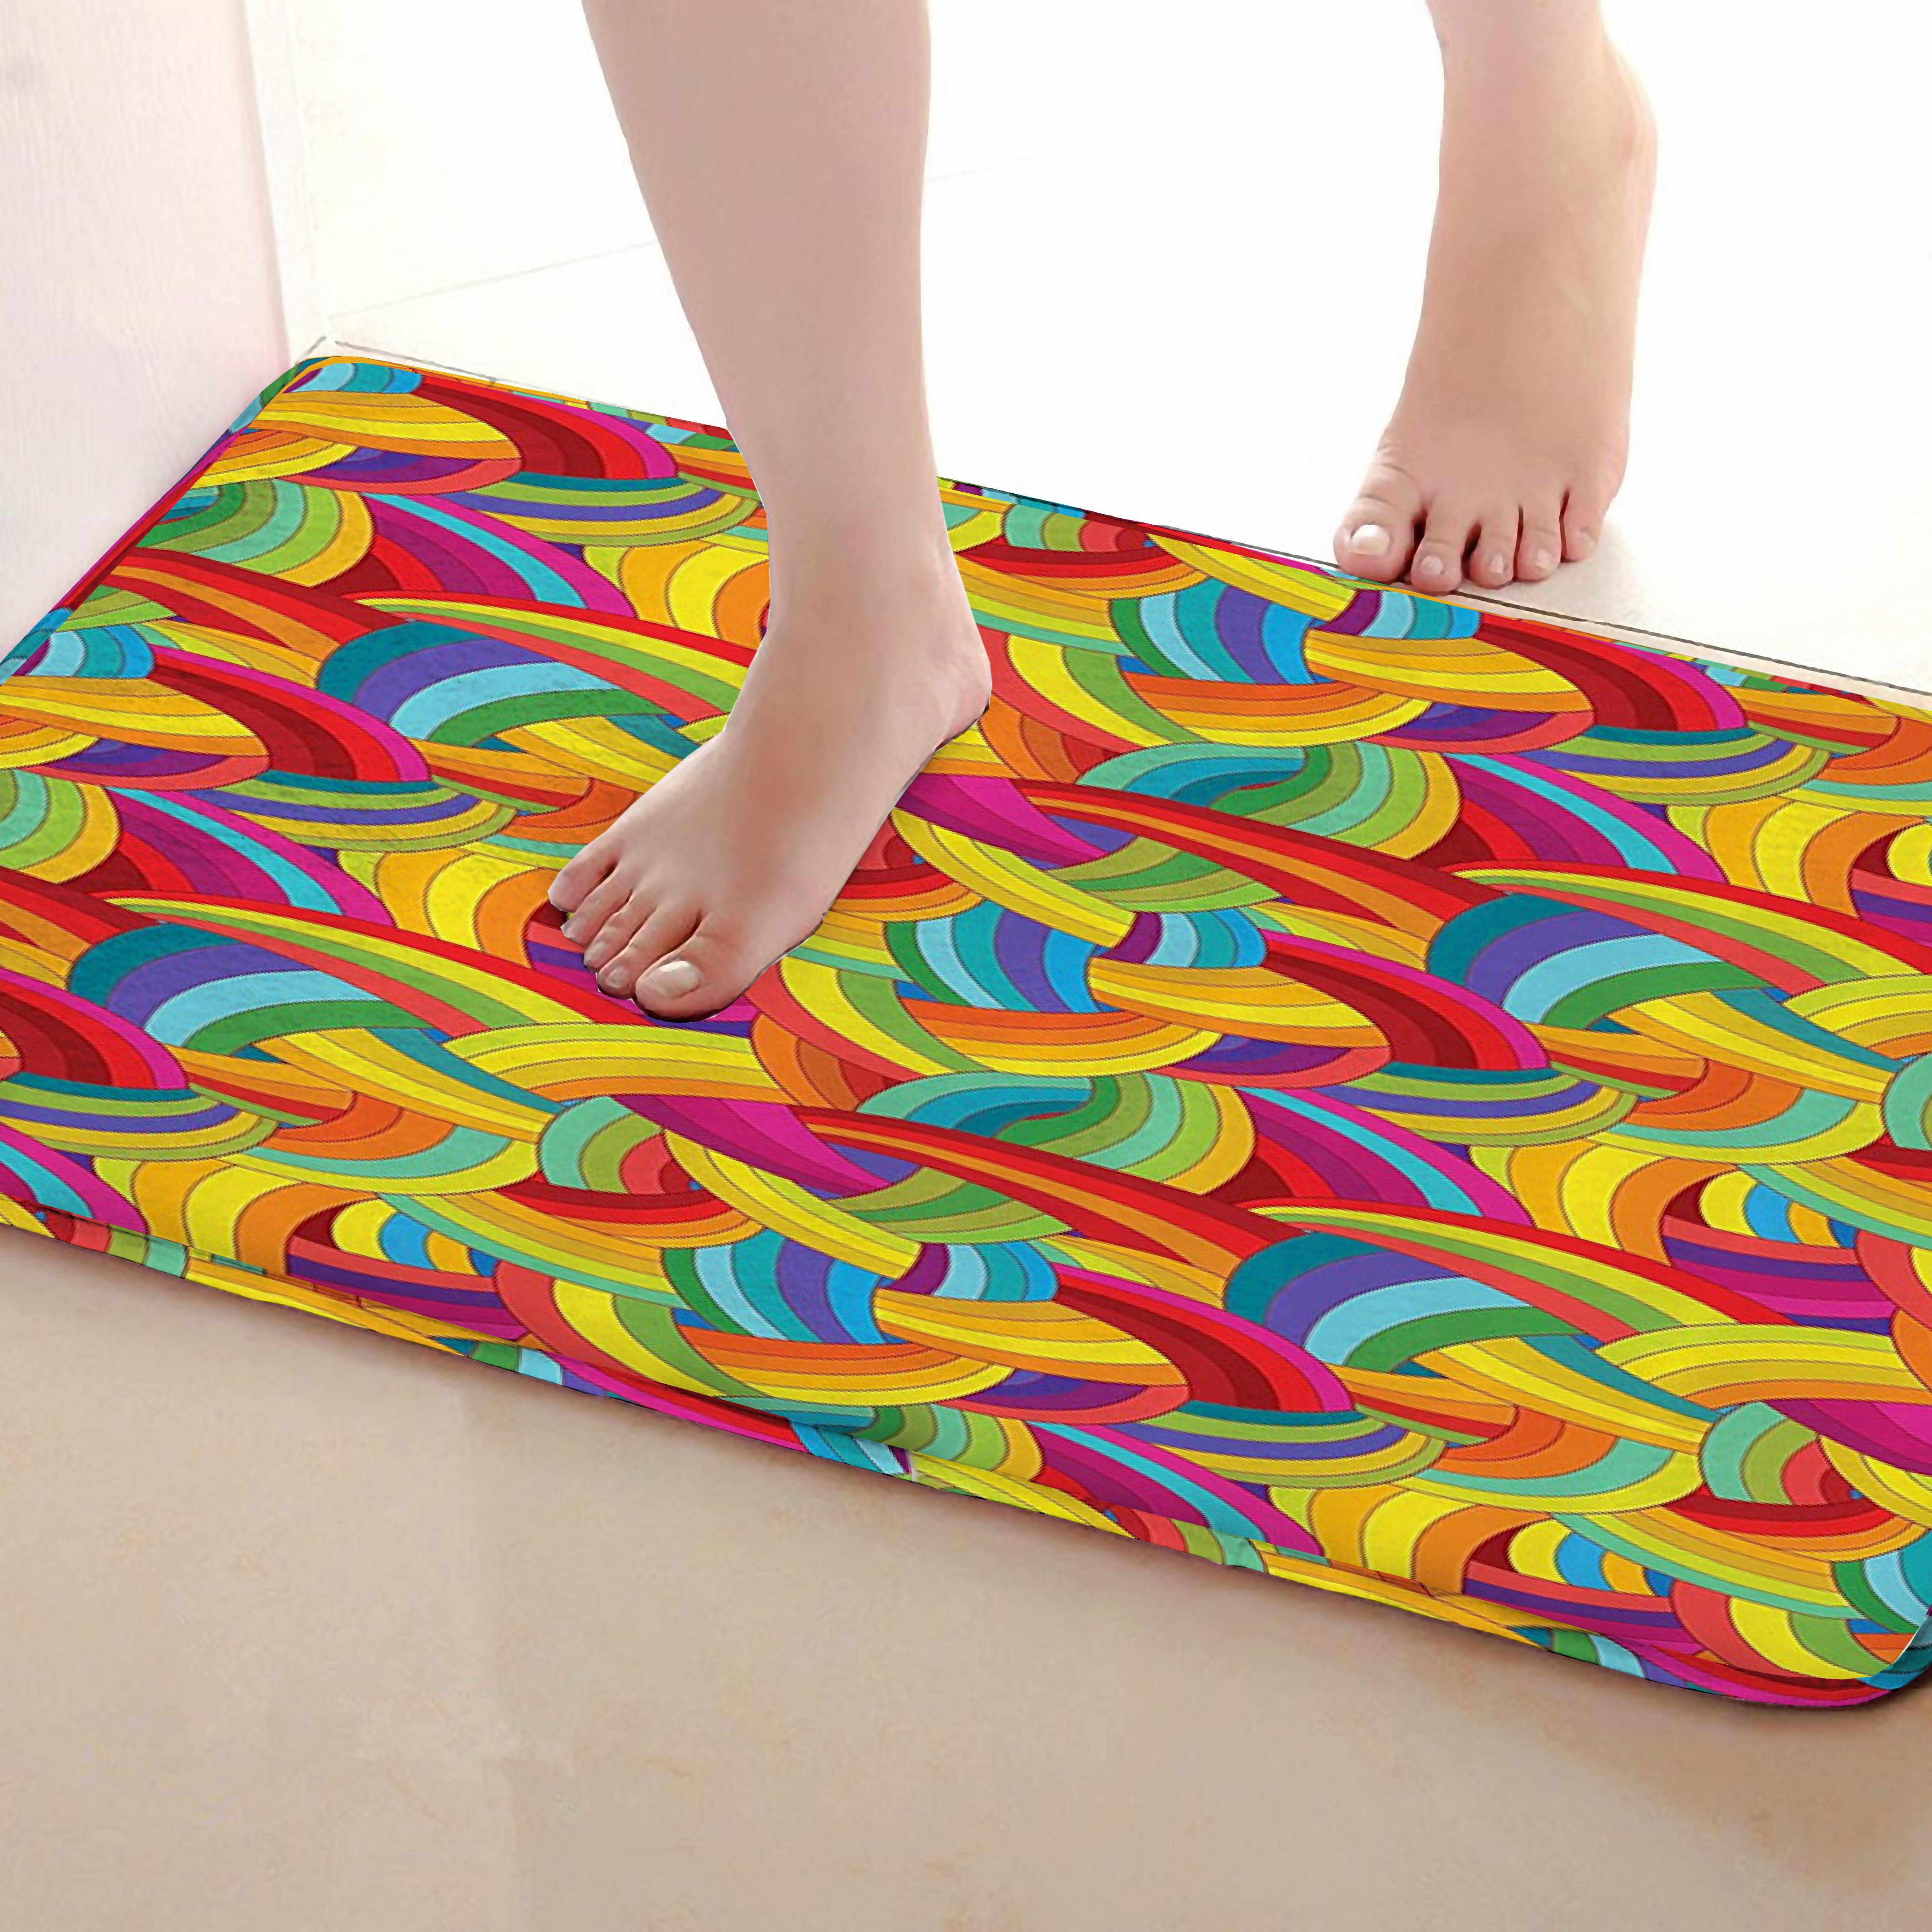 Weaving Style Bathroom Mat,Funny Anti skid Bath Mat,Shower Curtains Accessories,Matching Your Shower Curtain